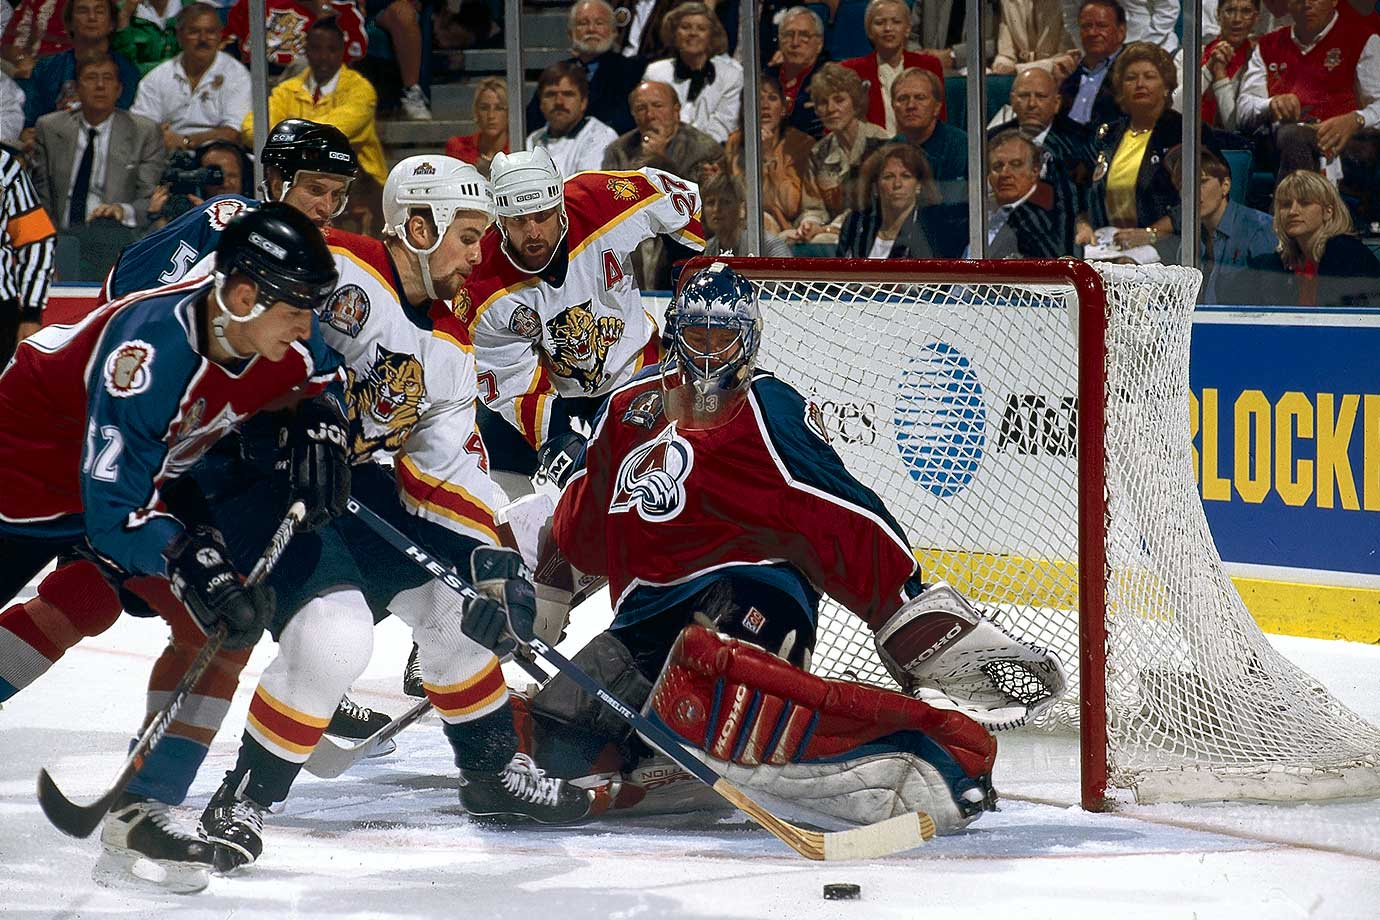 June 8, 1996 — Stanley Cup Final, Game 3 (Avalanche vs. Panthers)